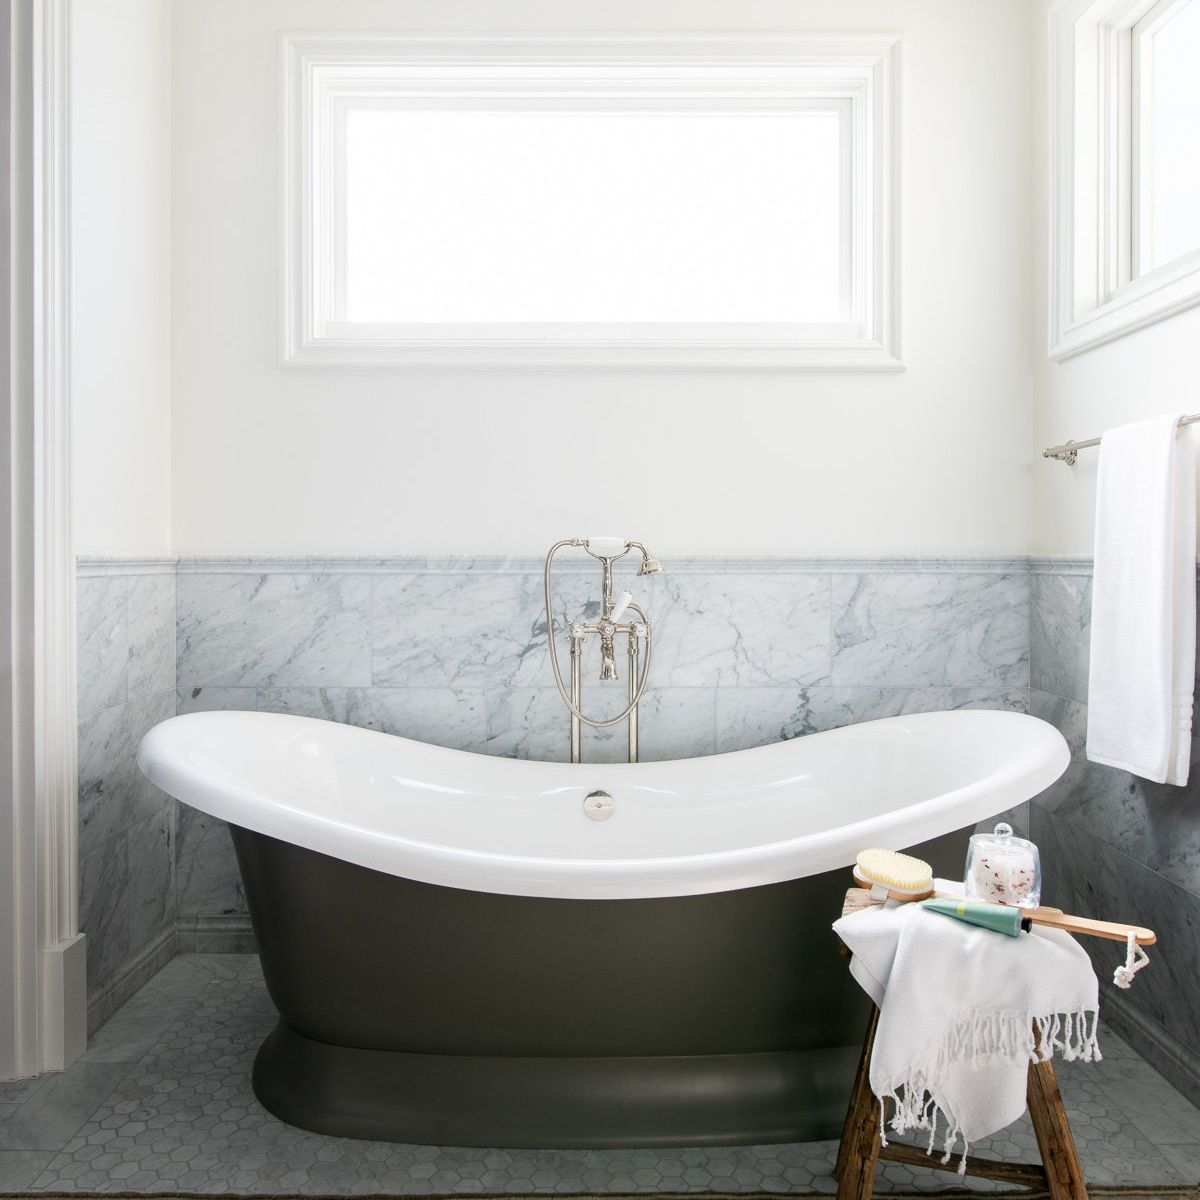 A bathroom lined with gray marble and a light brown printed rug